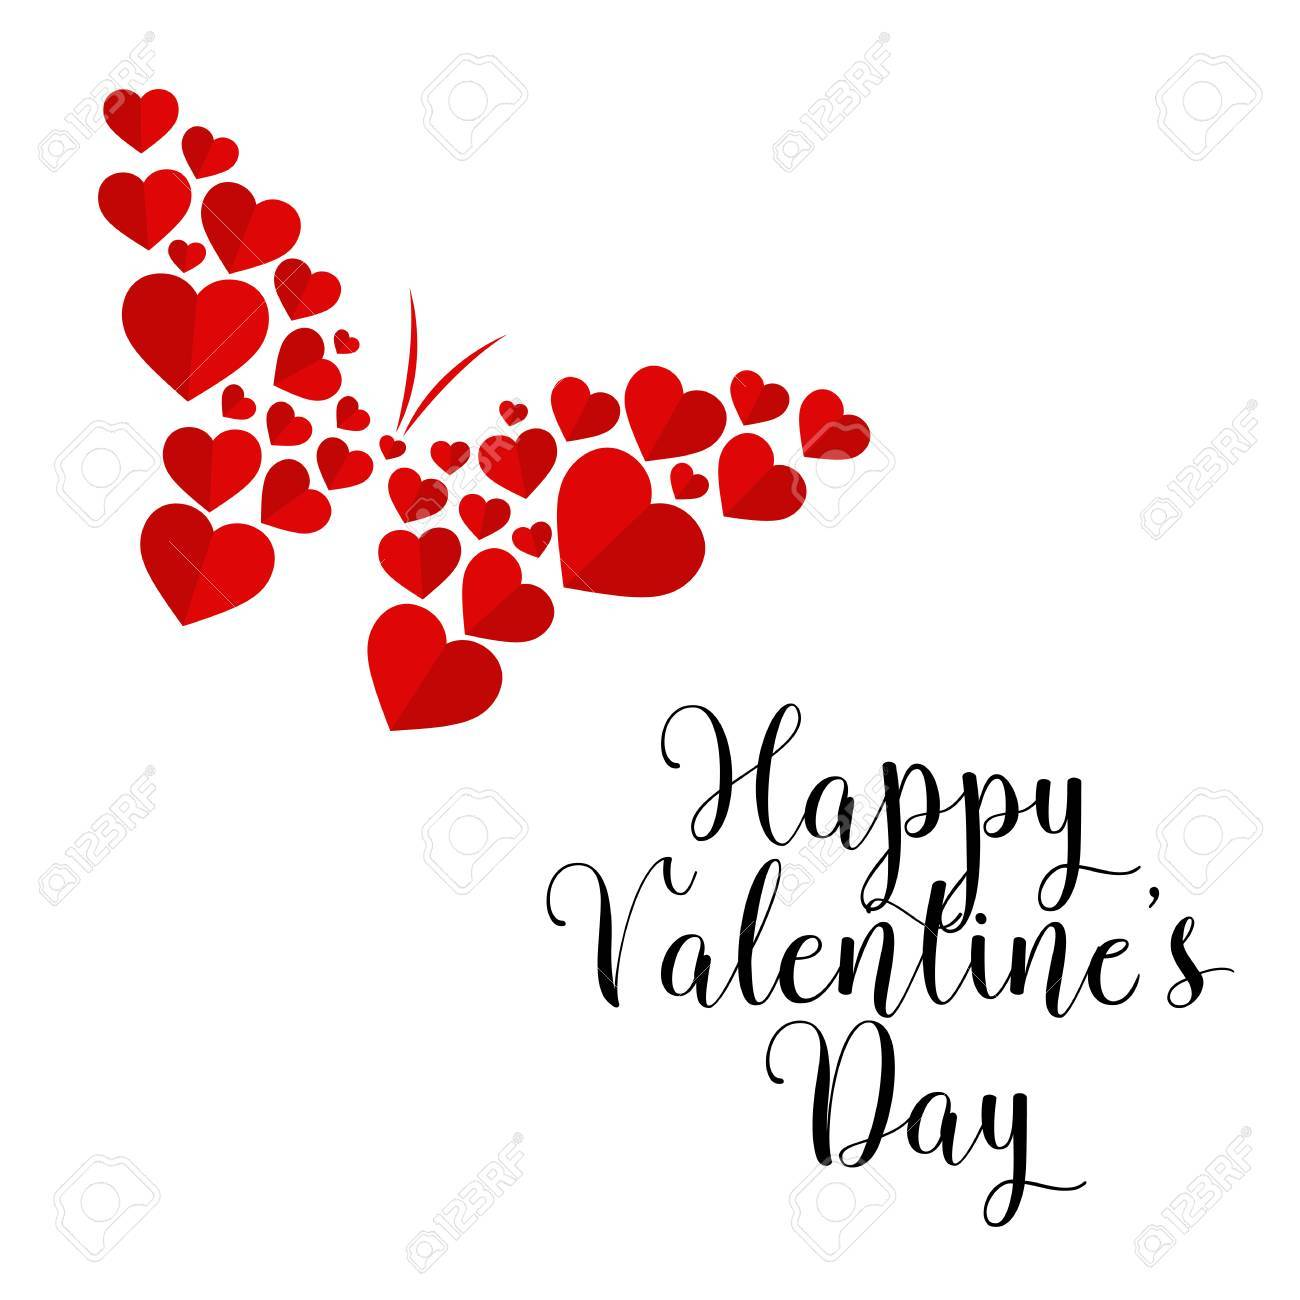 Modern Romantic Happy Valentine Card Suitable For Invitation Web Banner Social Media And Other Valentine Related Occasion